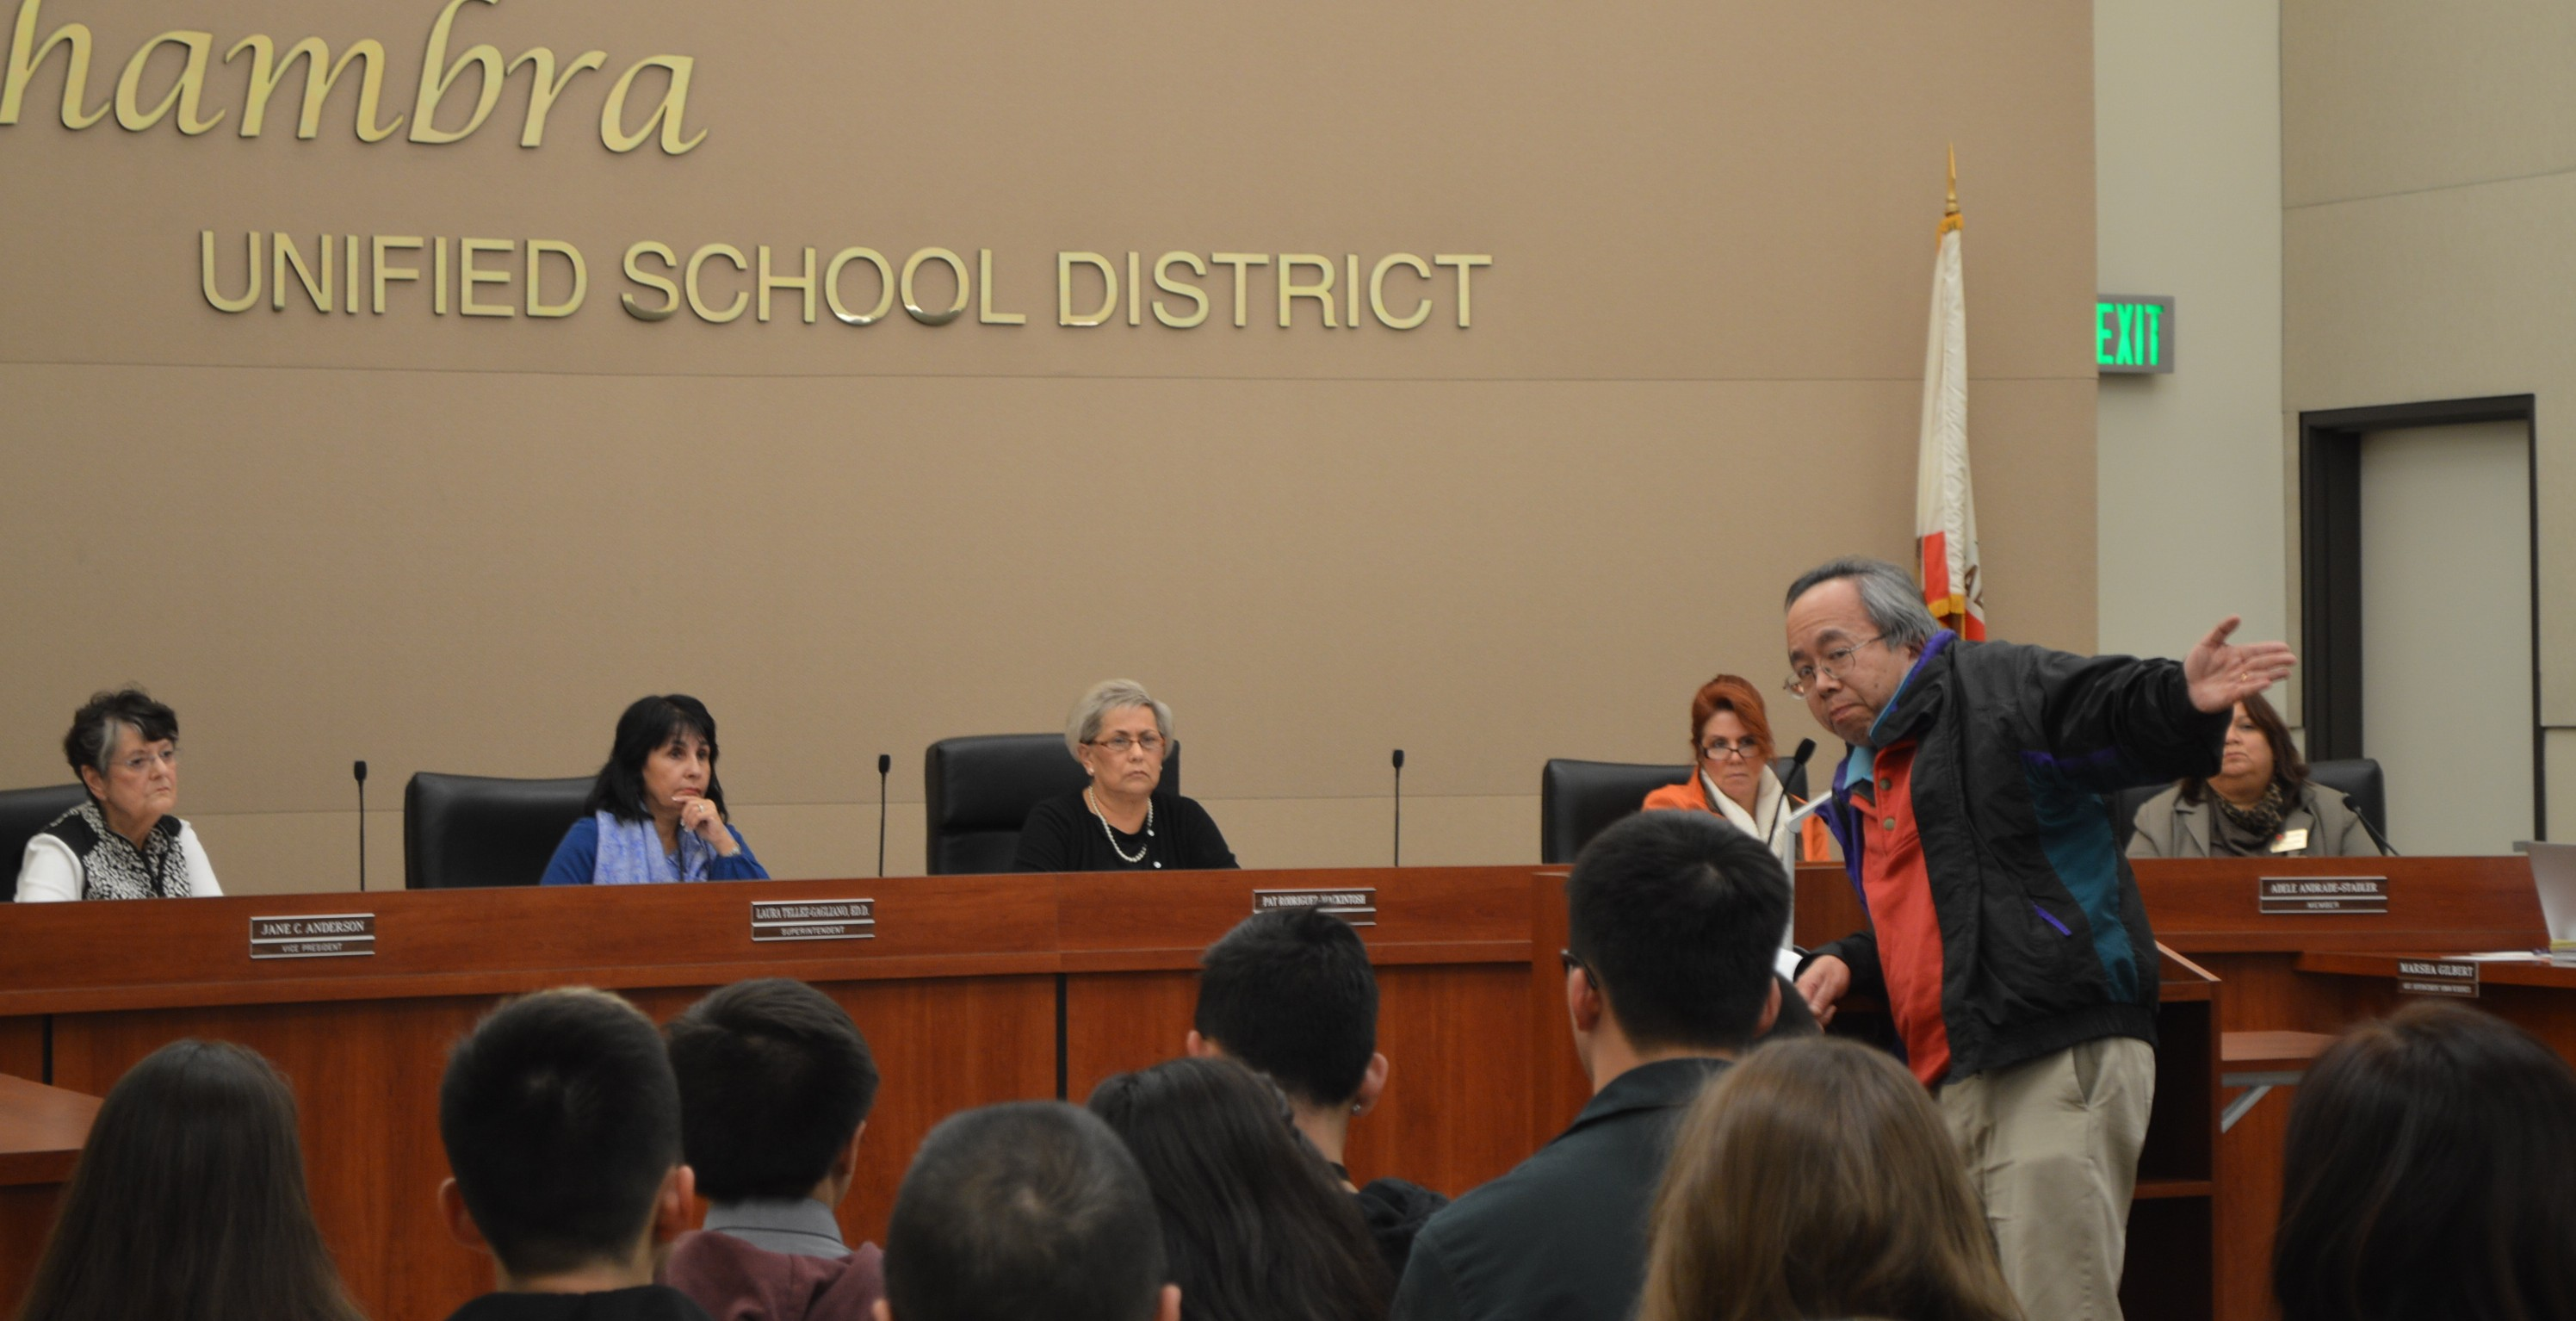 Douglas Chin, Sr. motions to the large amount of faculty, students, and parents in support of Cisneros's return to Mark Keppel during his speech to the AUSD board. THE AZTEC/BRANDON CHUNG